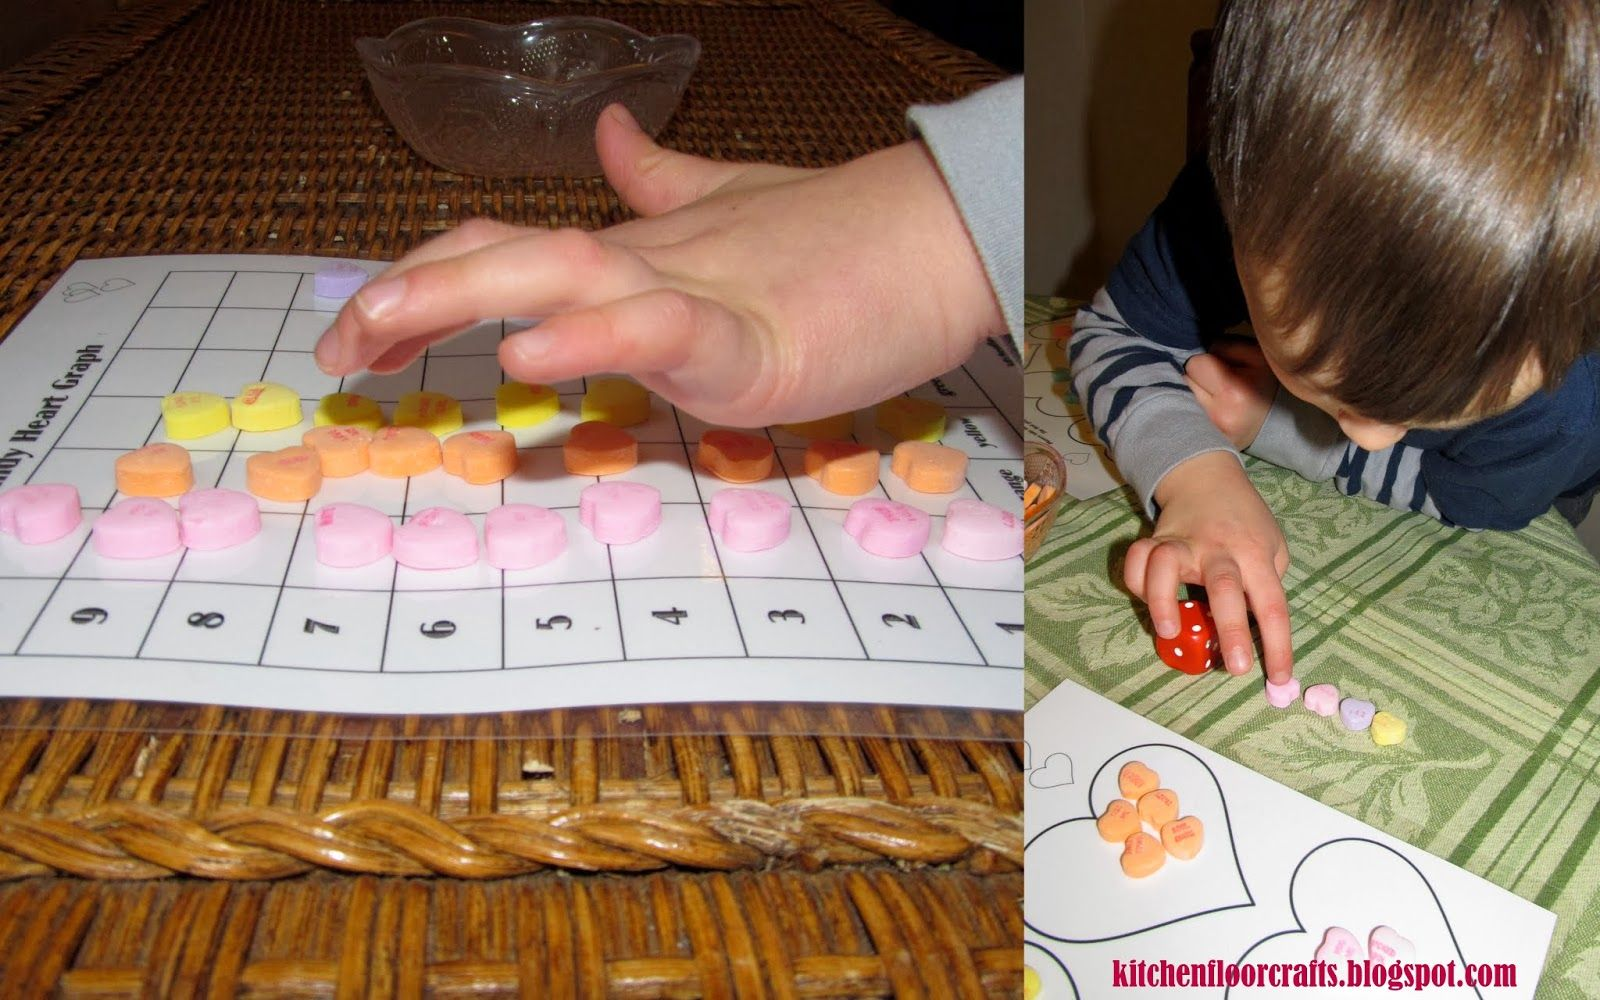 Kitchen Floor Crafts Using Candy Hearts for Early Math